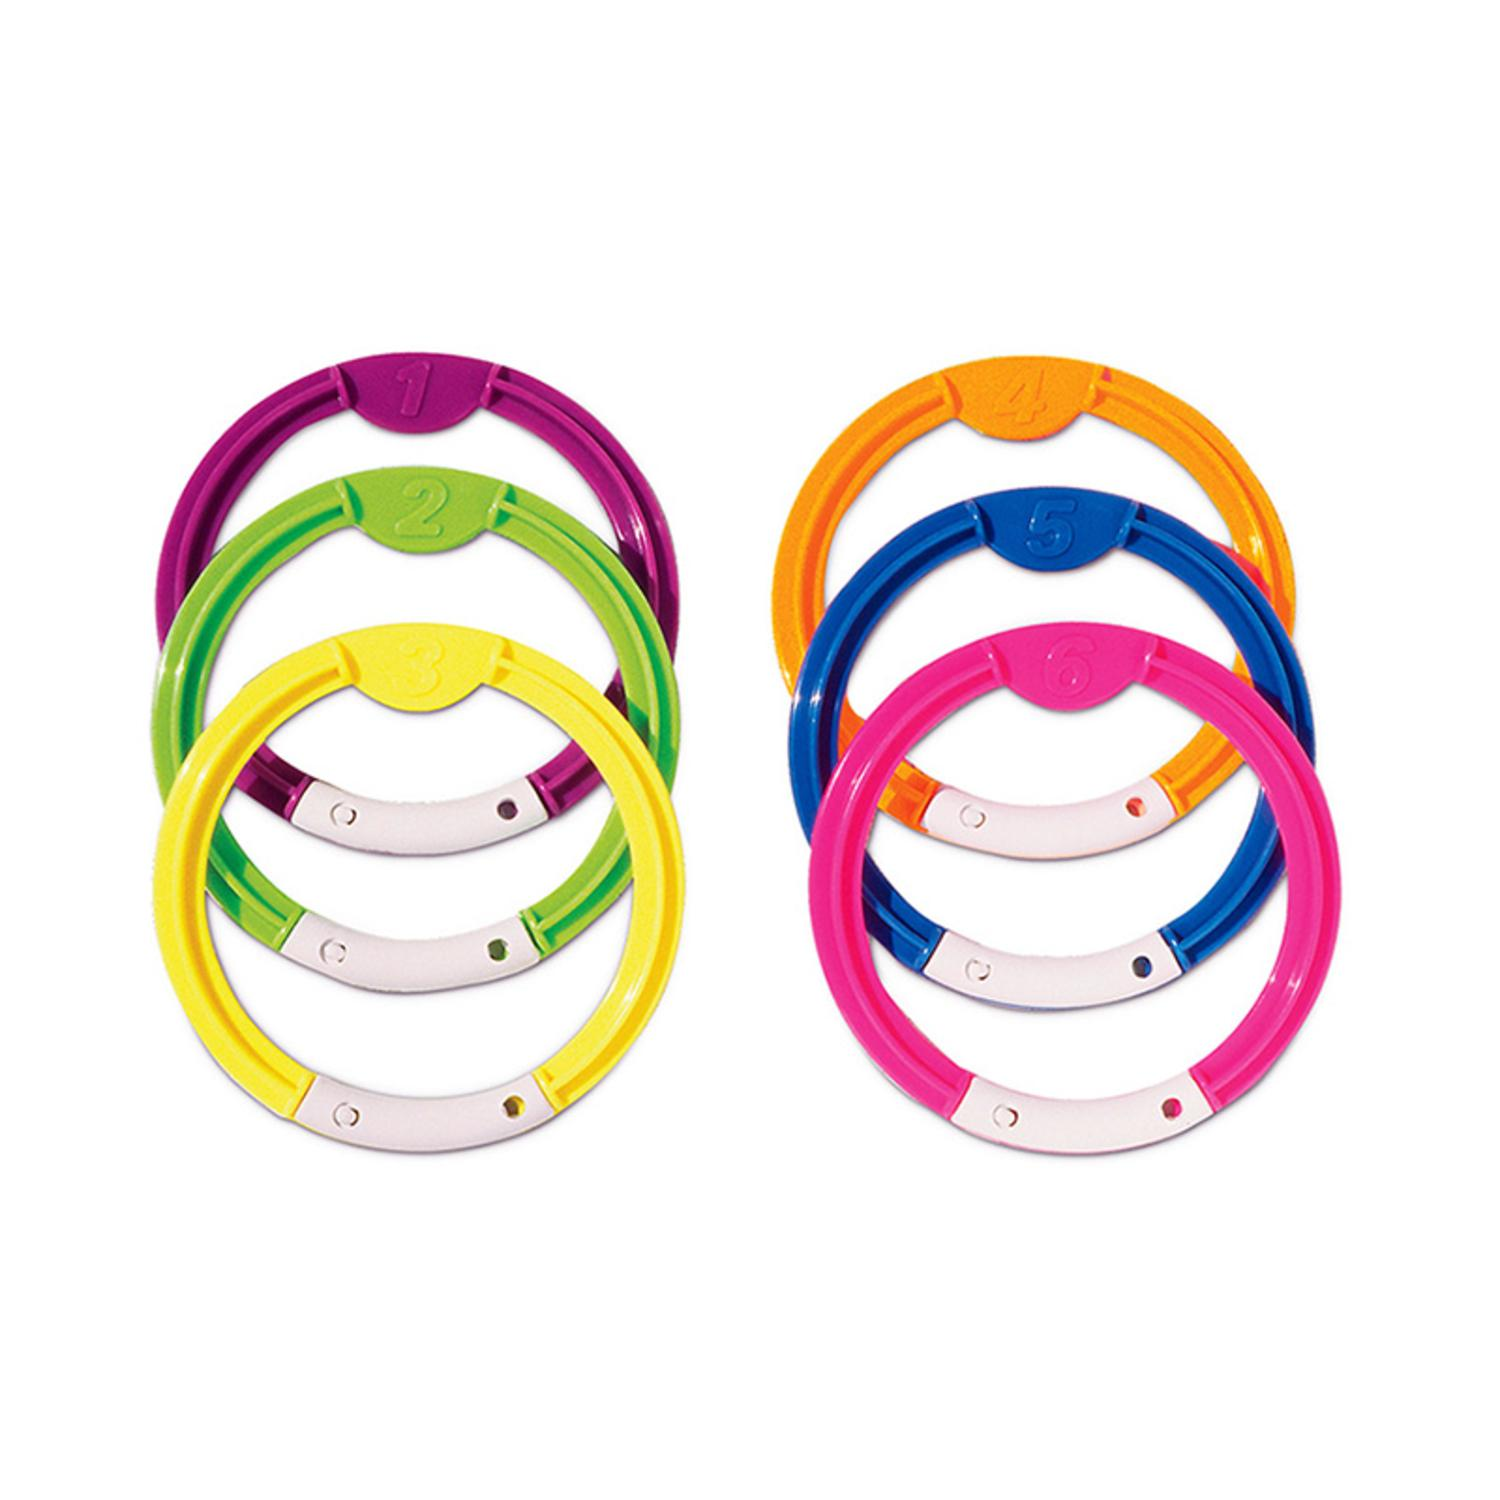 Set of 6 Multi-Colored Swimming Pool Dive Rings 6""